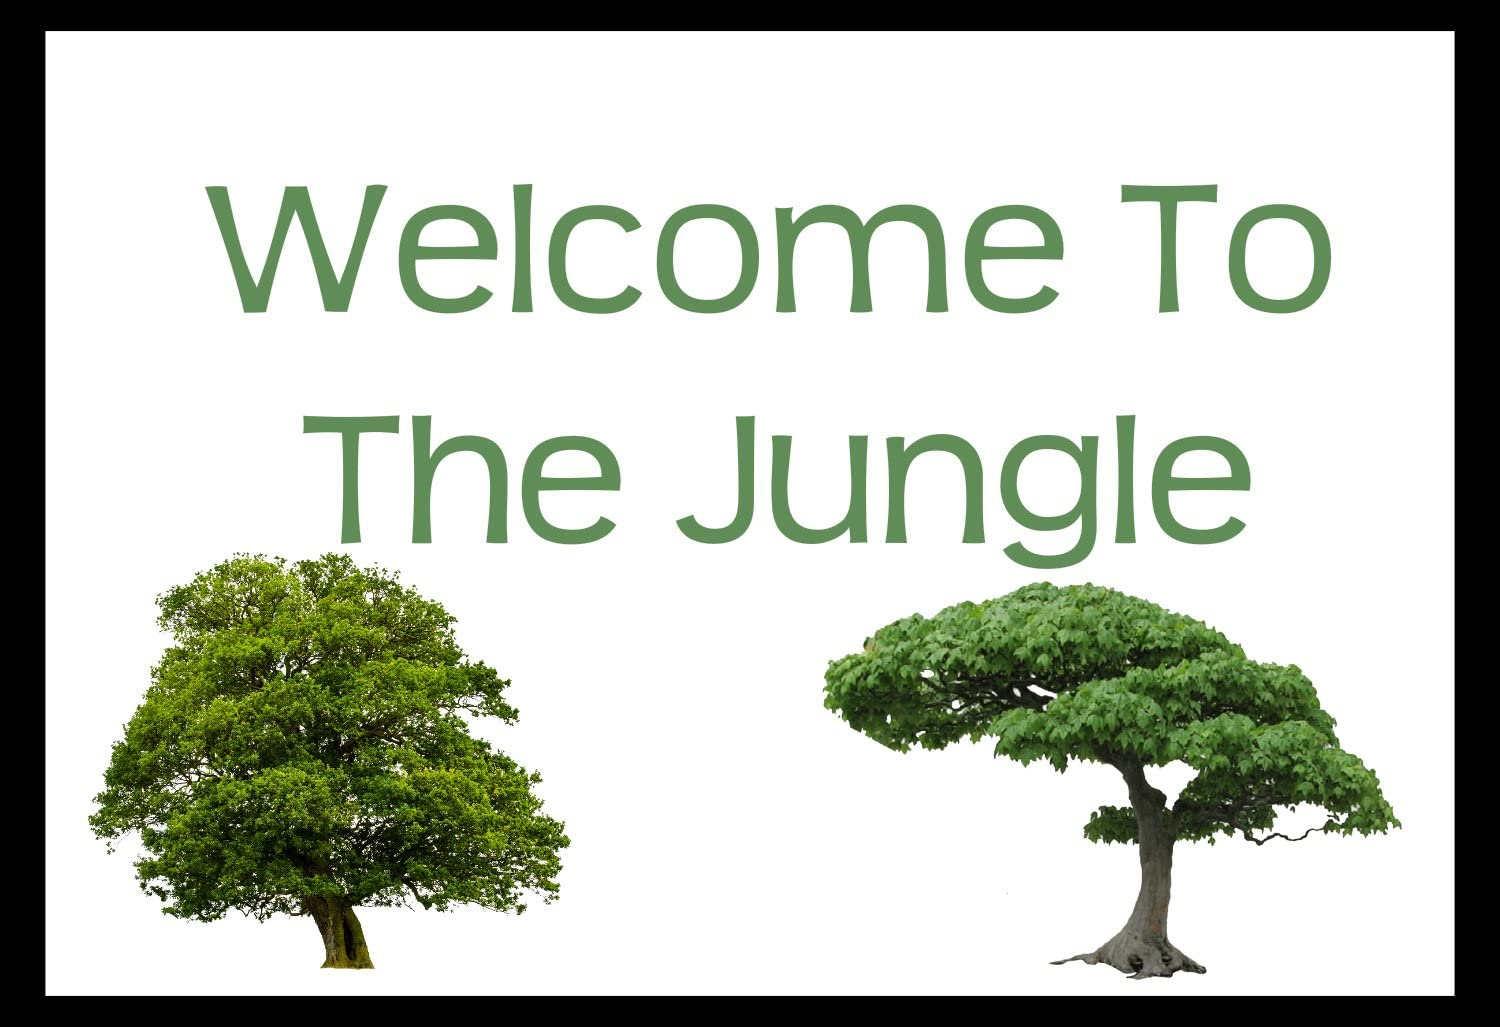 Fuhr Photograpy Welcome to The Jungle Quote Design Colorful Home Decor Country Rustic Wood Sign Minimalist Black and White Clean Classic Wall Art